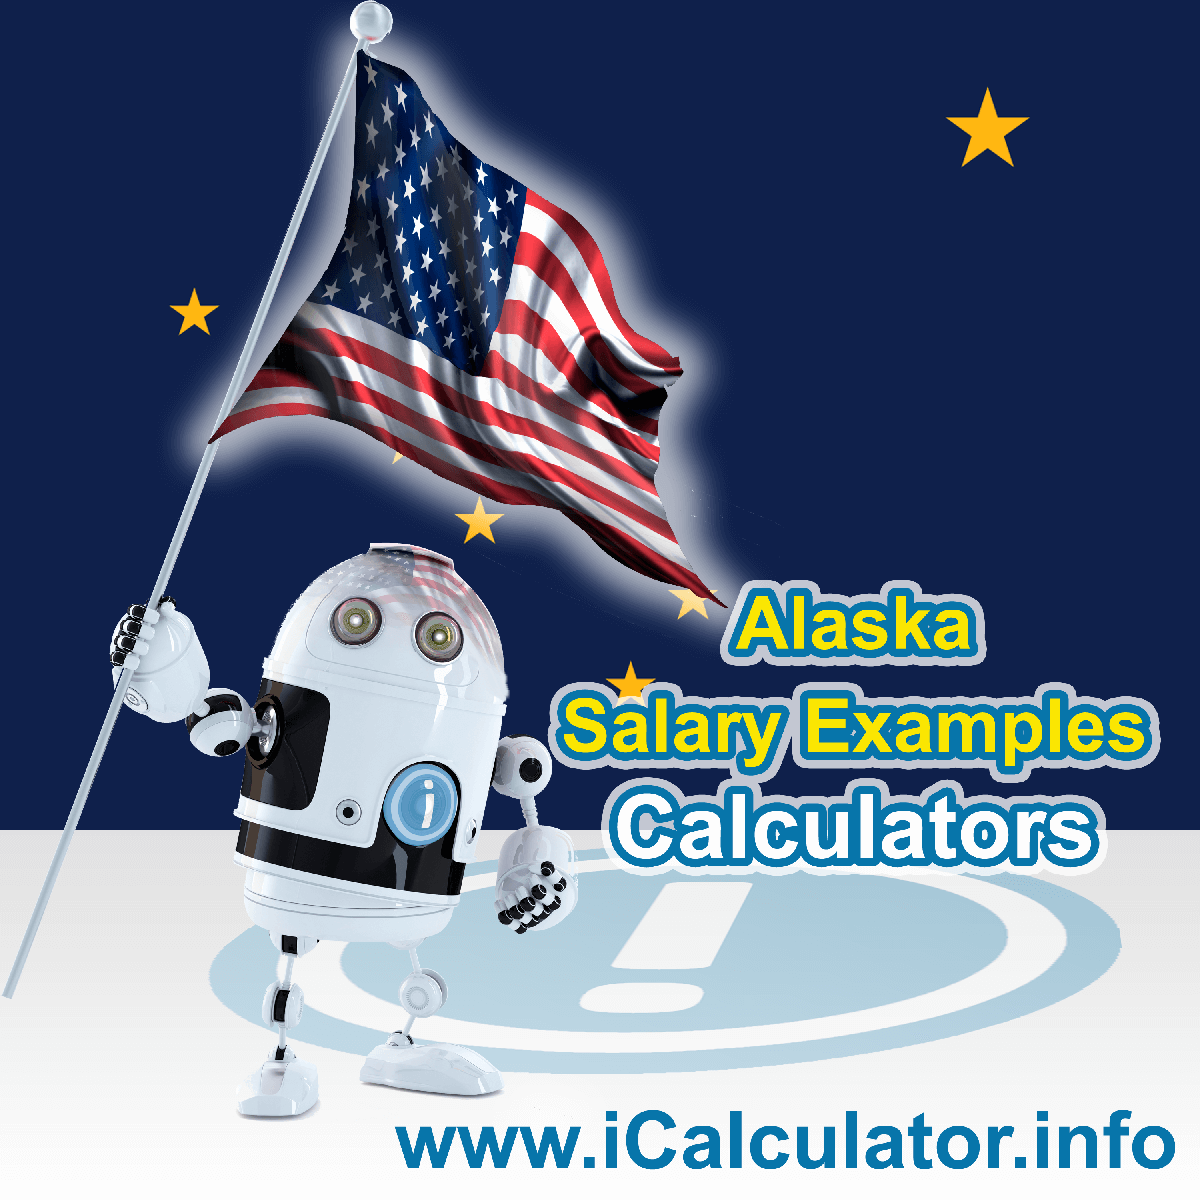 Alaska Salary Example for $20.00 in 2020 | iCalculator | $20.00 salary example for employee and employer paying Alaska State tincome taxes. Detailed salary after tax calculation including Alaska State Tax, Federal State Tax, Medicare Deductions, Social Security, Capital Gains and other income tax and salary deductions complete with supporting Alaska state tax tables